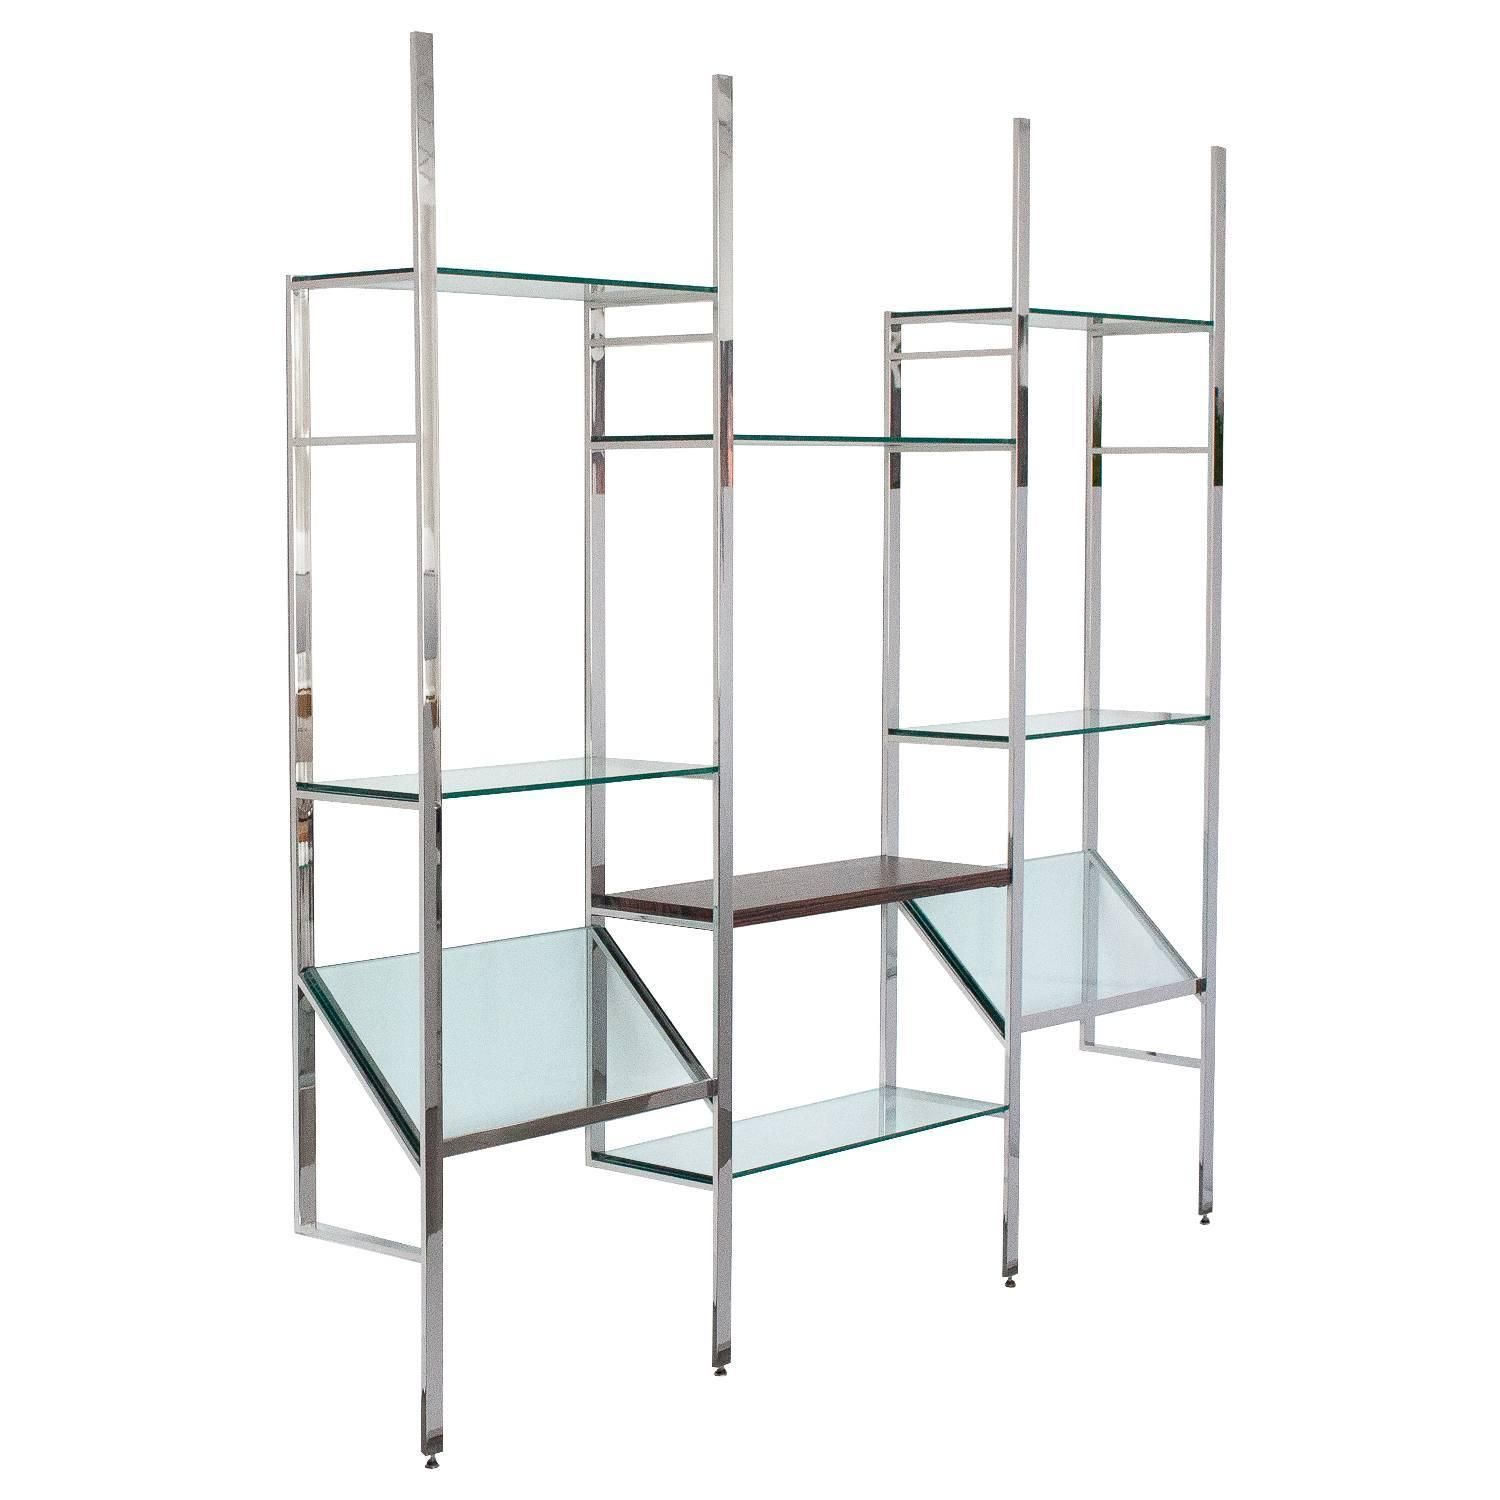 Milo Baughman Chrome And Glass Wall Mounted Shelving System For Sale At 1stdibs